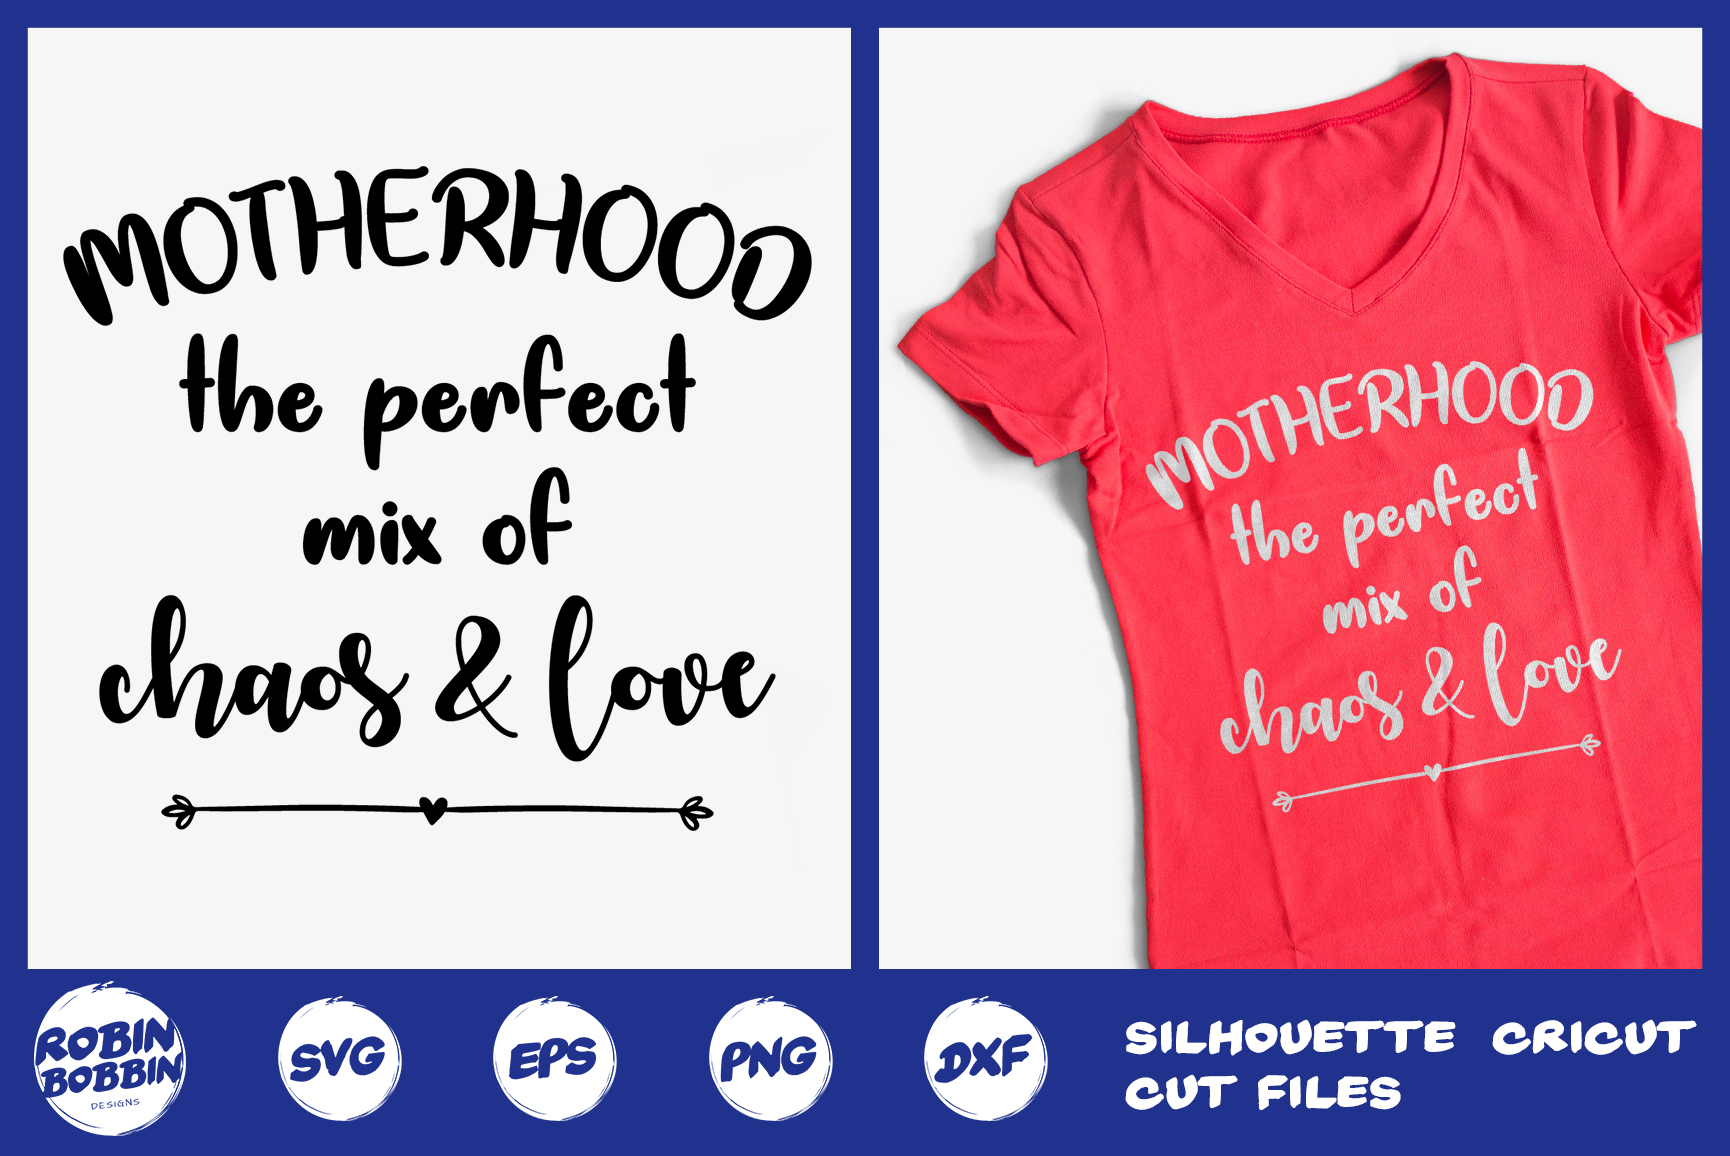 Motherhood The Perfect Mix Of Chaos & Love svg - Mother SVG example image 1